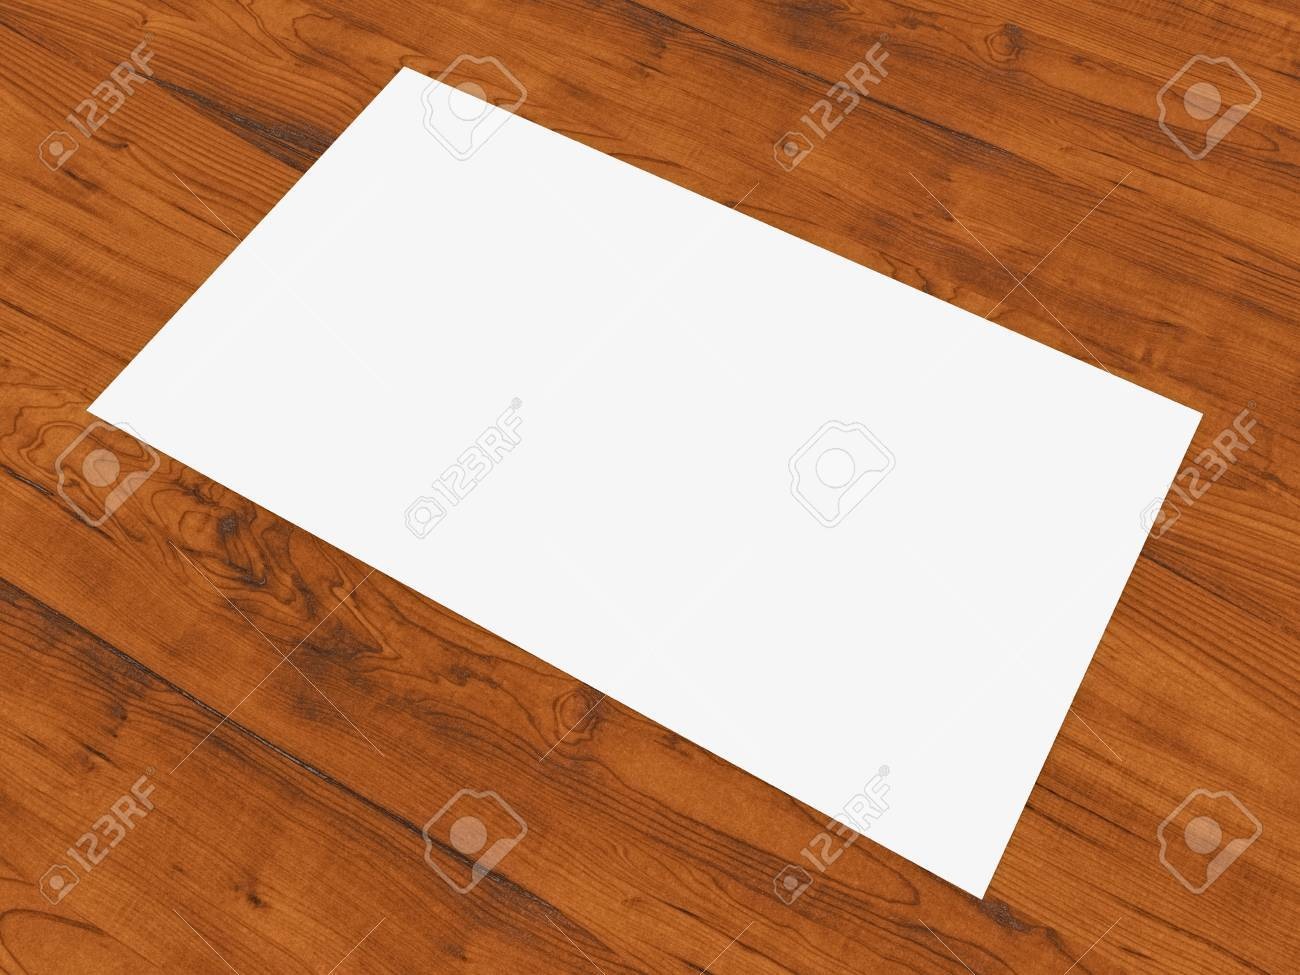 Blank Business Card Resting On Wood Surface Stock Photo Picture